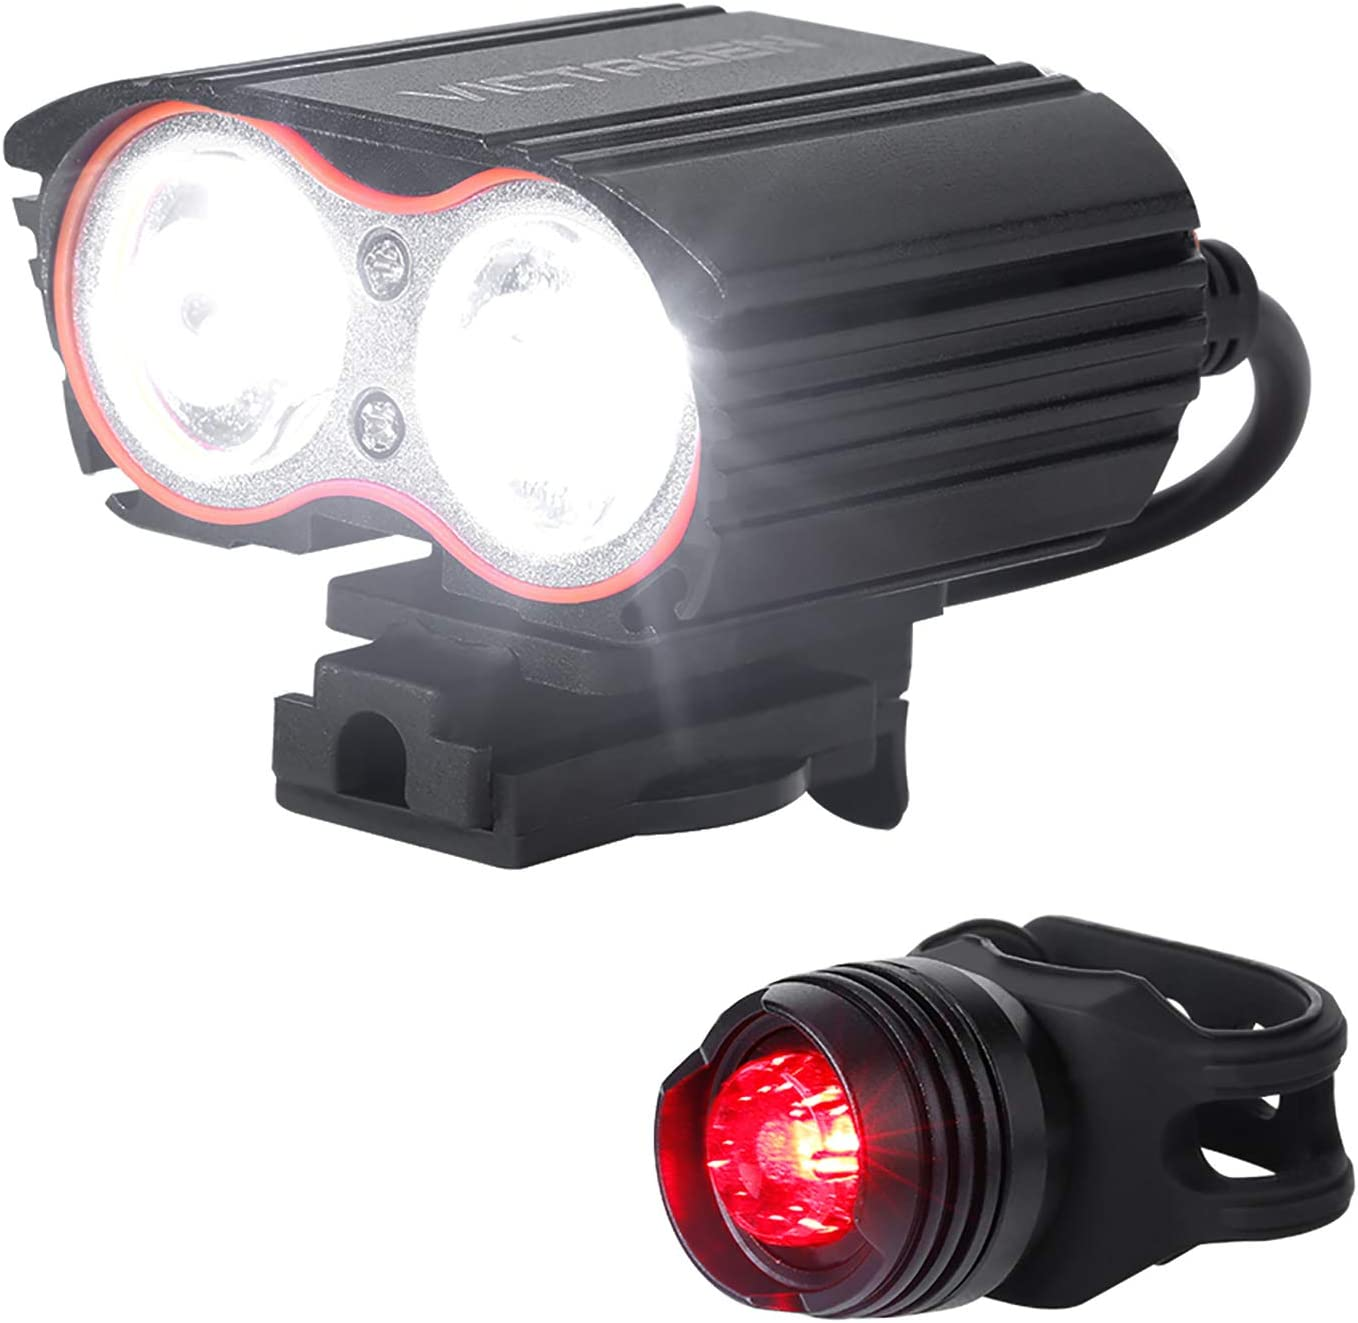 LED USB Rechargeable Bicycle Bike Headlight Front Lamp Torch Light NEW